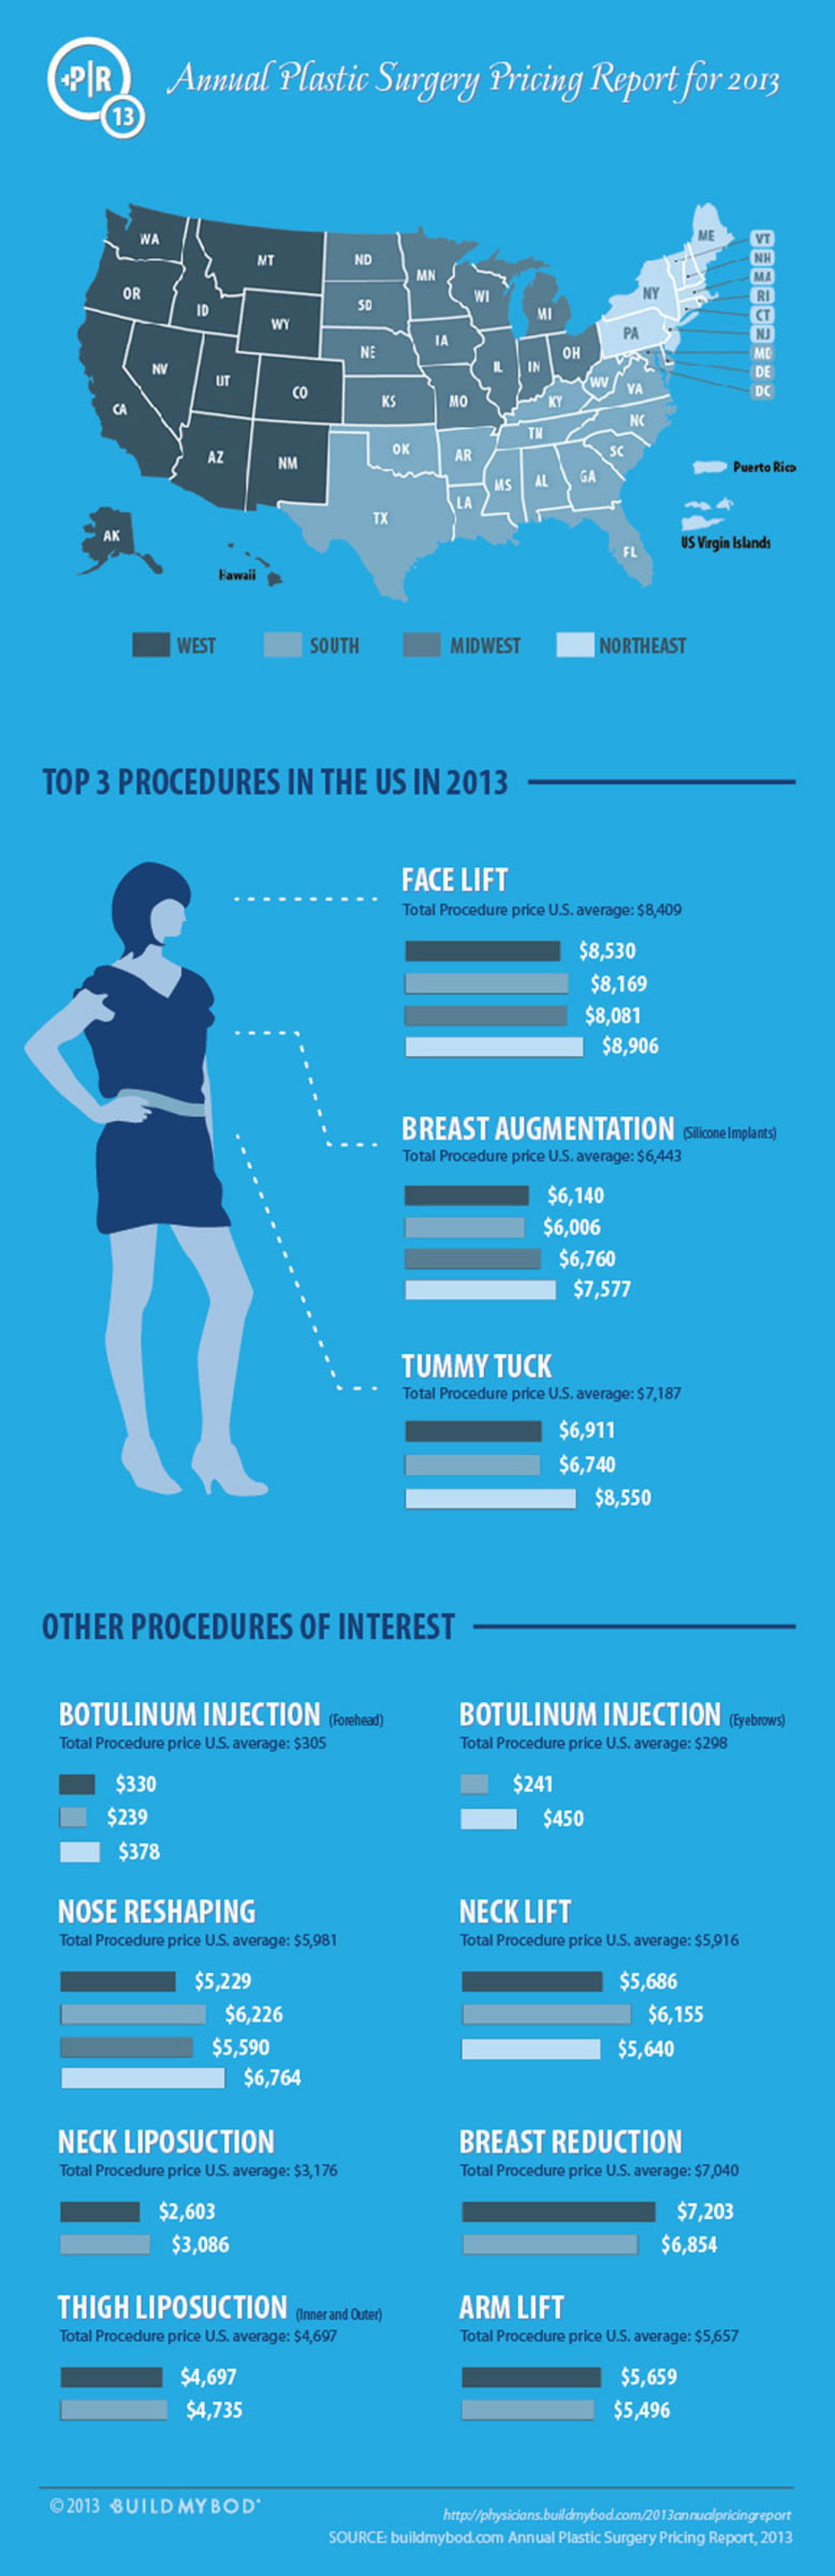 BuildMyBod's Annual Plastic Surgery Pricing Report for 2013.  (PRNewsFoto/BuildMyBod)